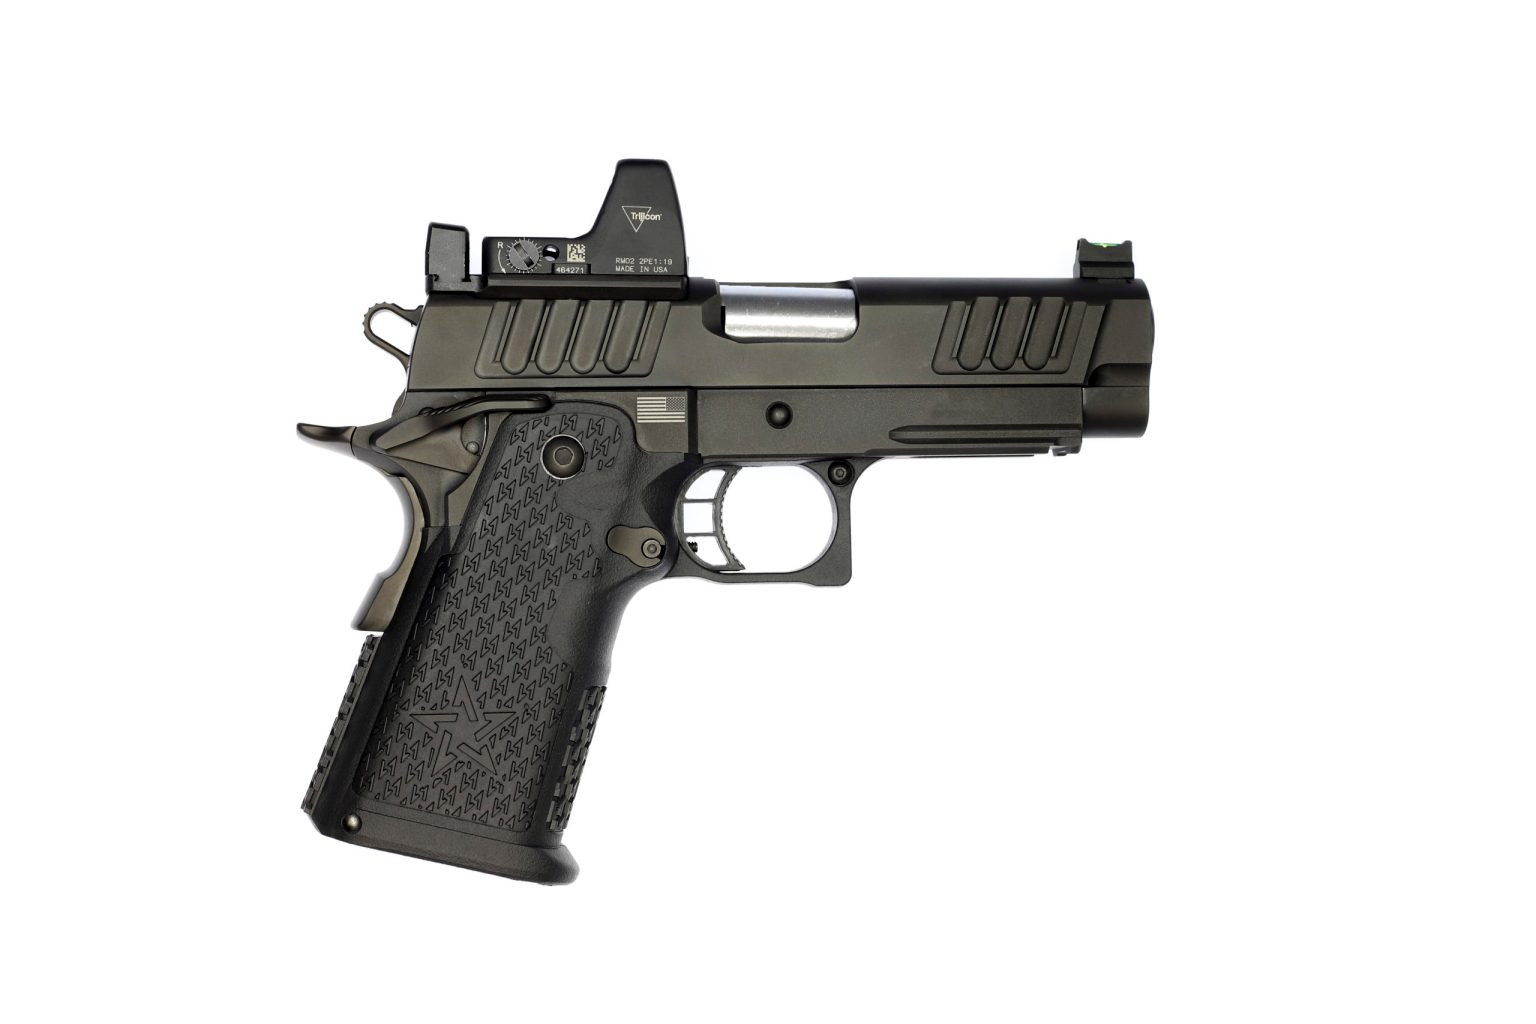 Staccato C2 Duo Handgun with sight attachment